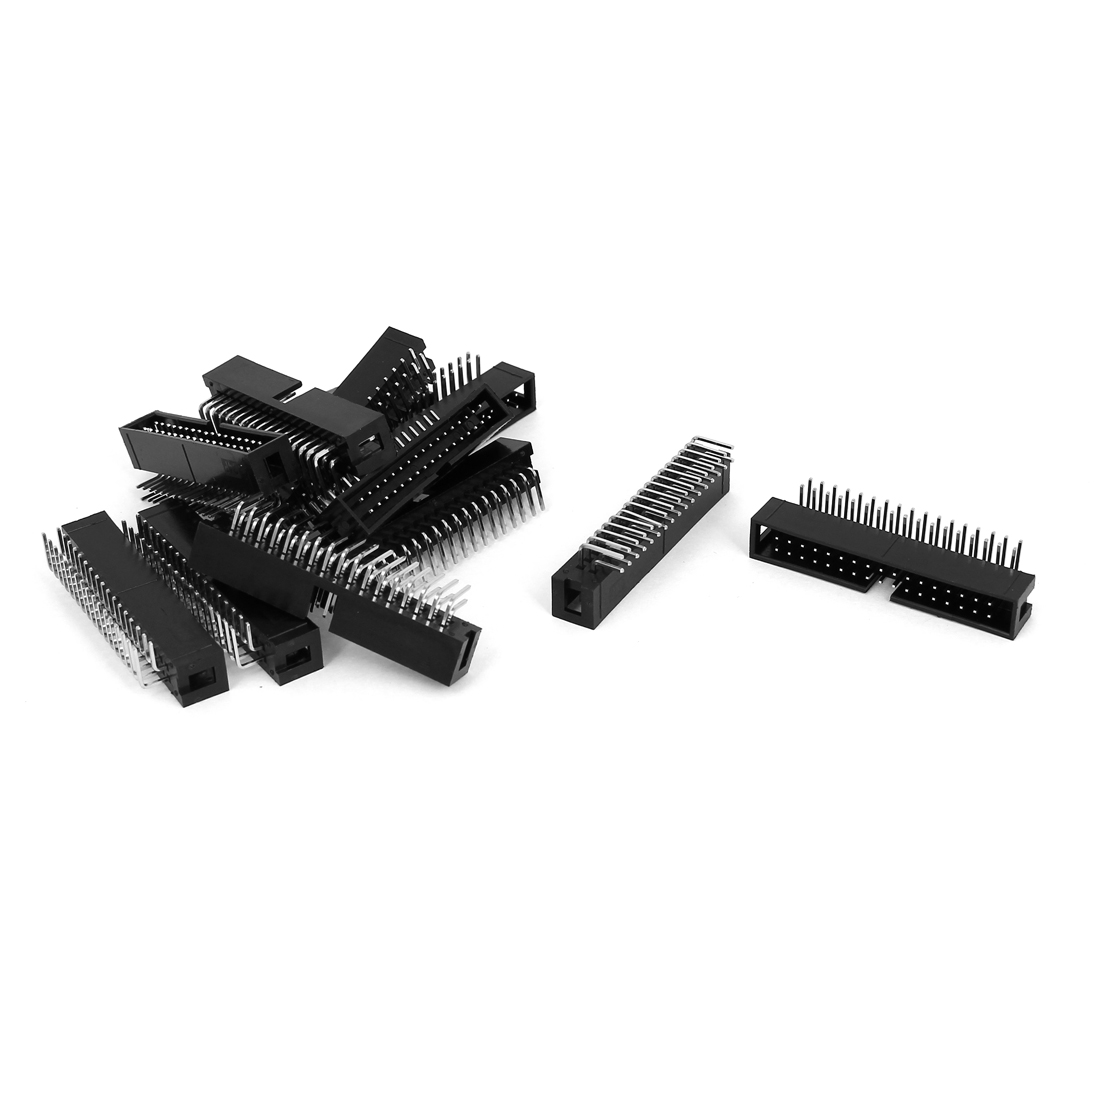 12 Pcs Right Angle 34pins 2.54mm Pitch Double Row IDC Box Pin Headers Connectors